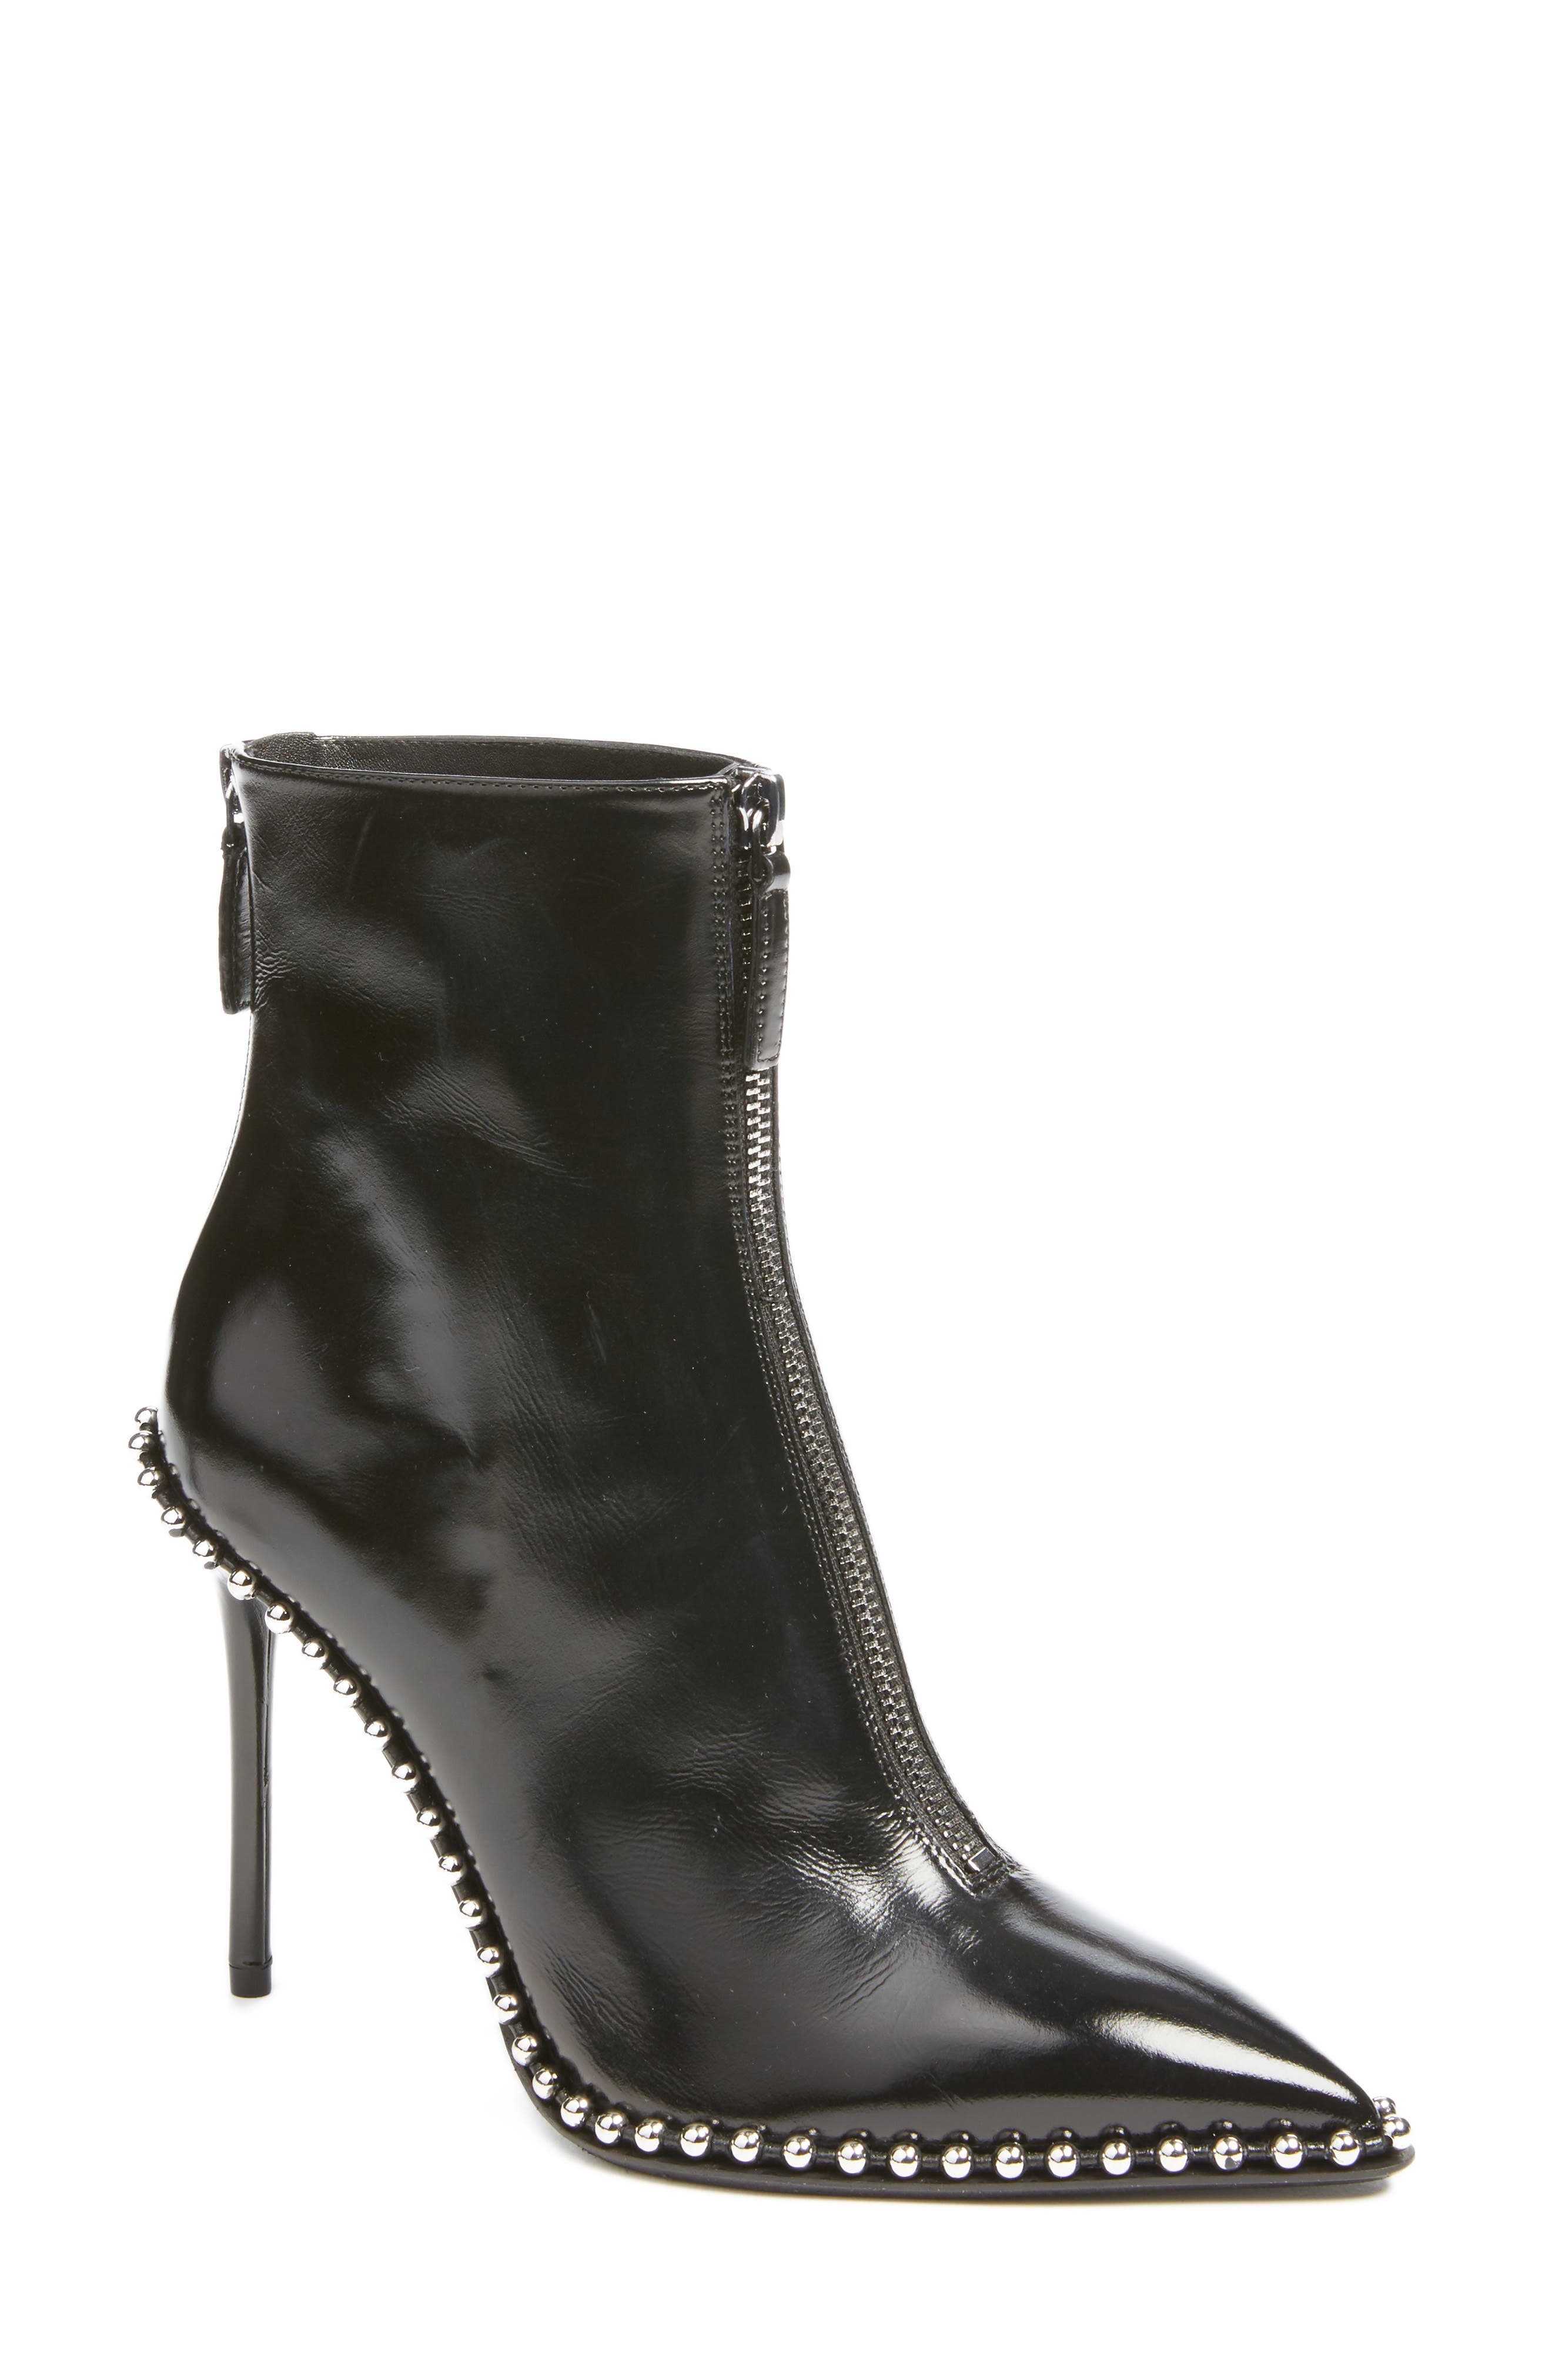 Alexander Wang Eri Zipper Bootie - Black